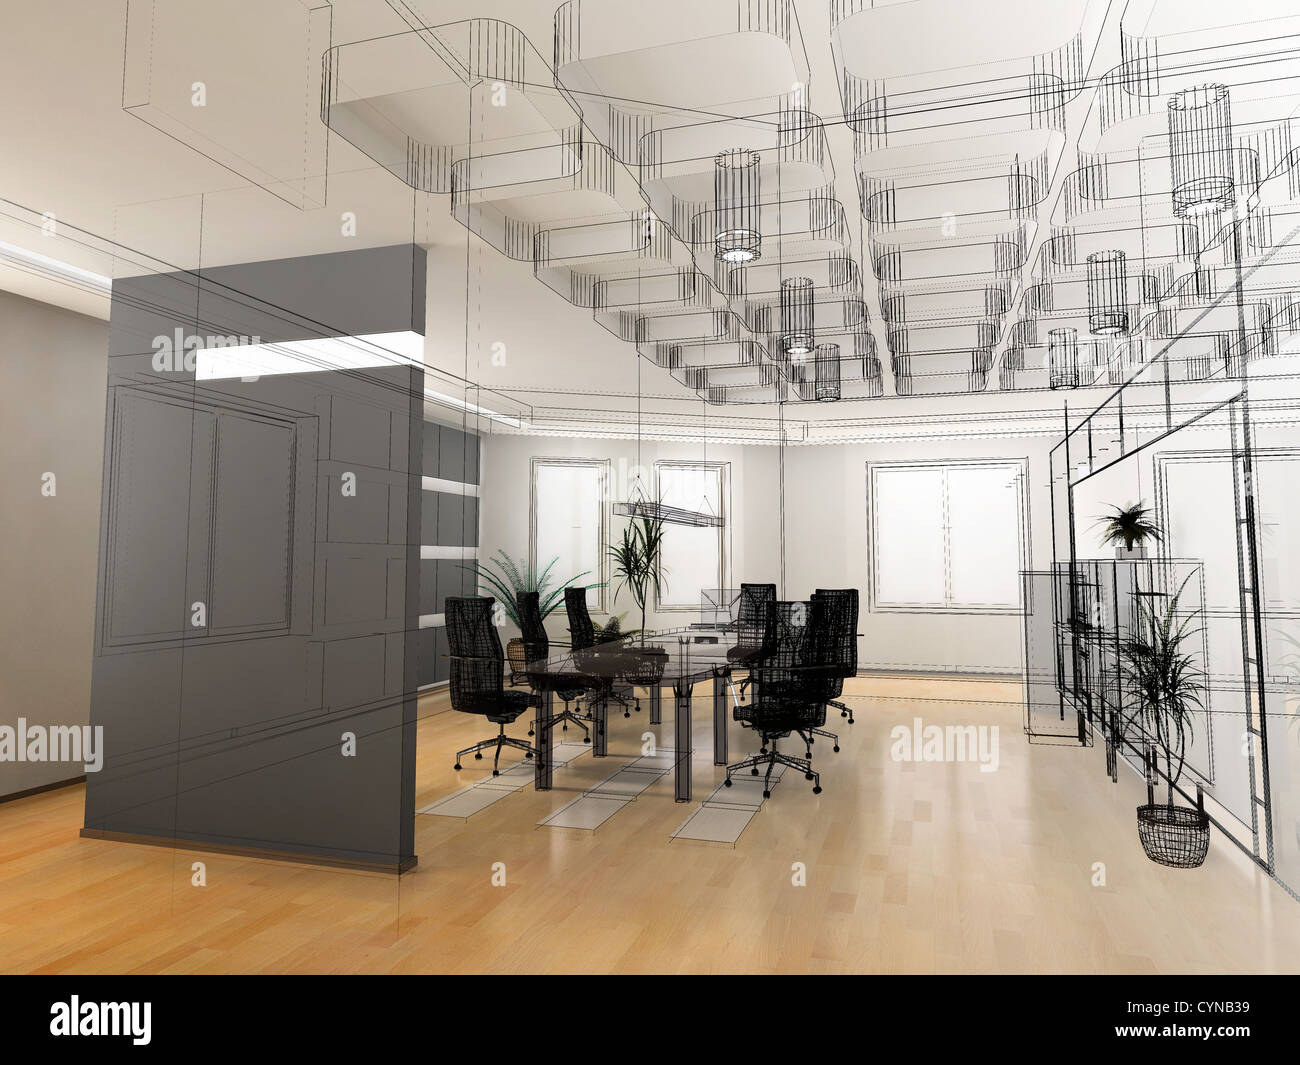 The modern office interior design sketch 3d render stock for 3d interior design online